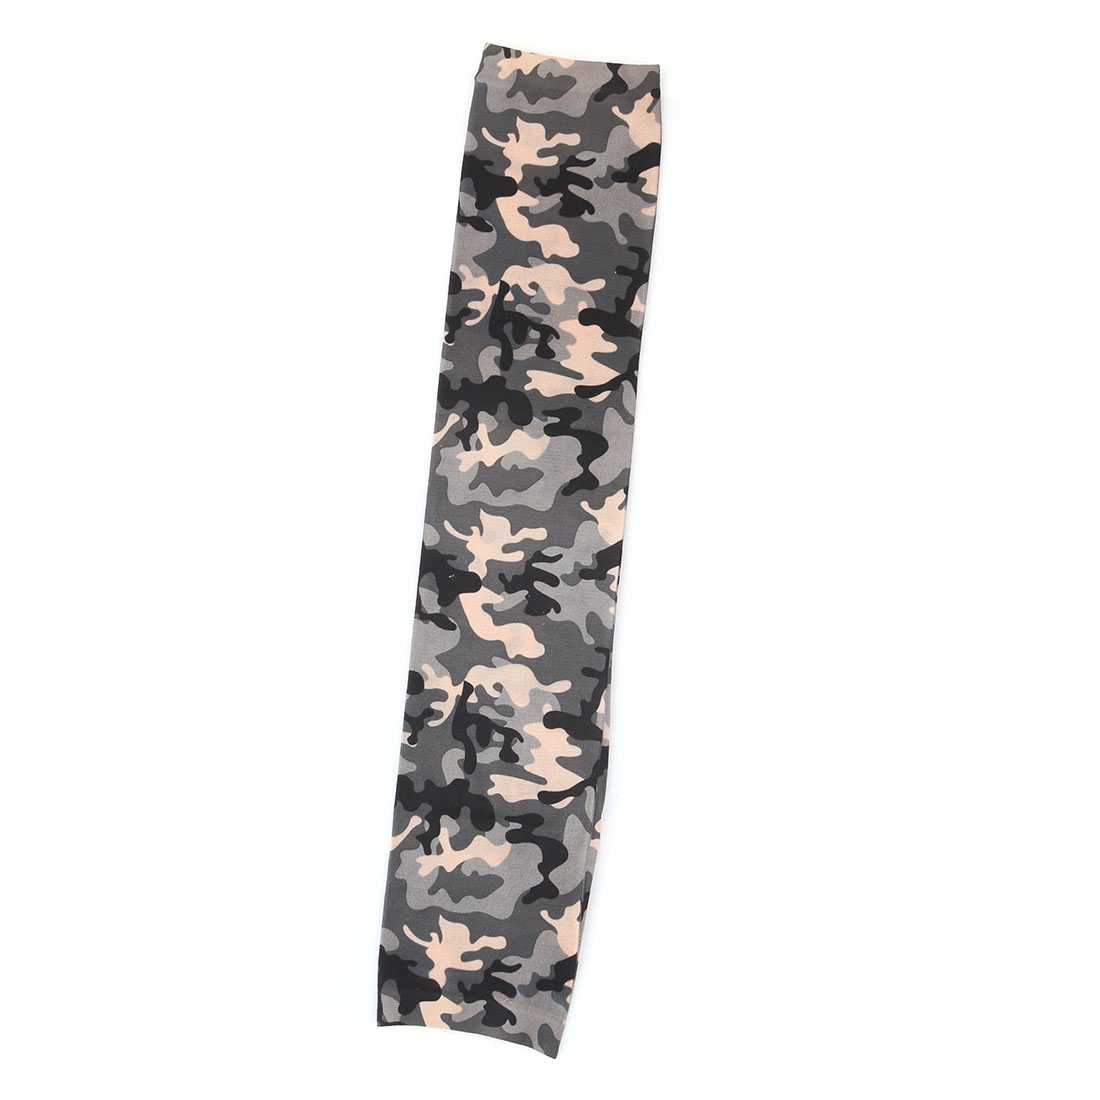 Home Garden Camouflage Print Cleaning Arm Protector Sun Protection Sleeve Cover Gray